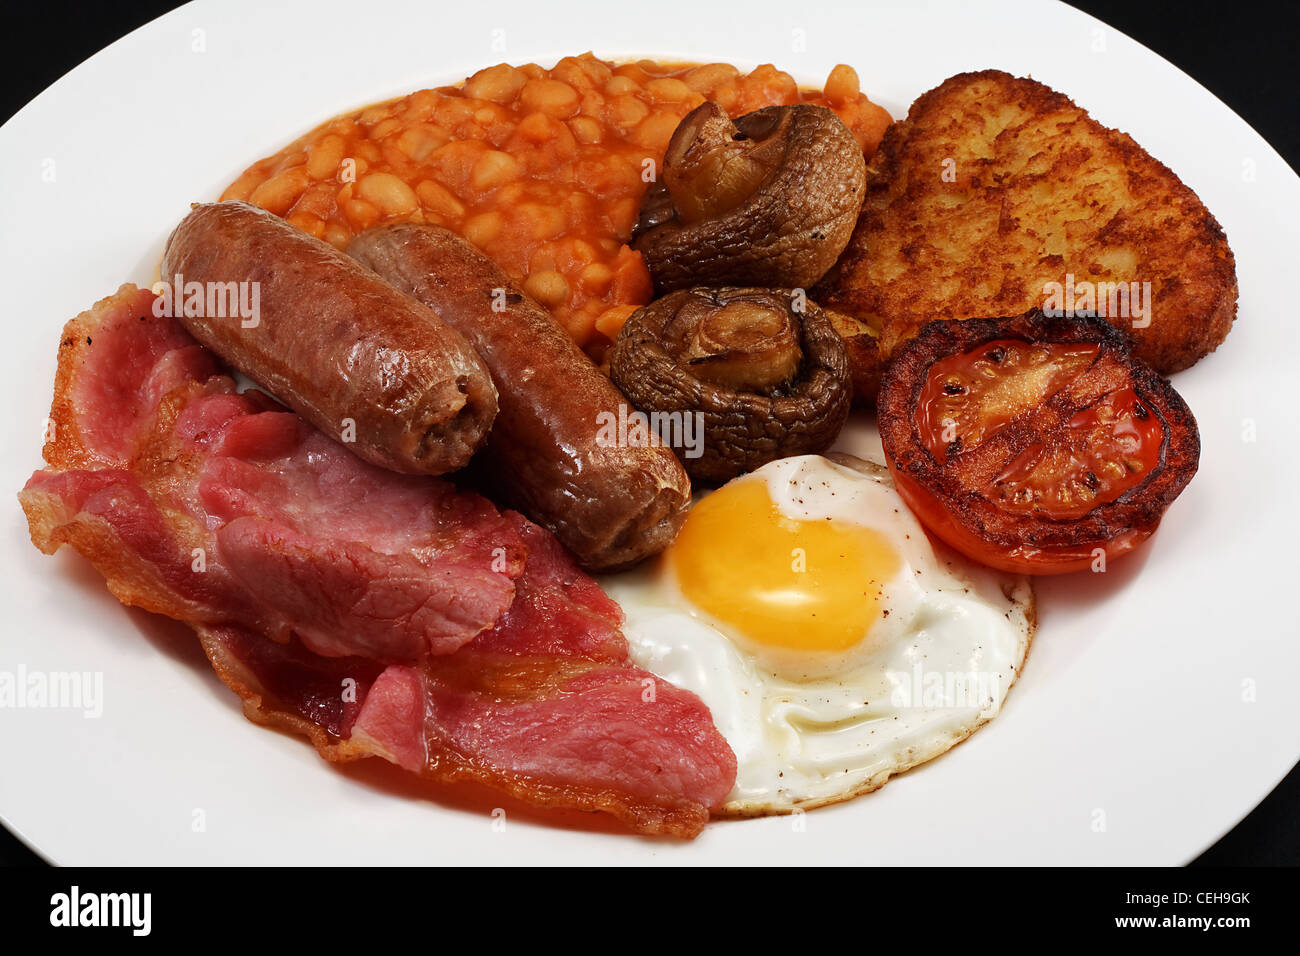 Typical fry up consisting of Sausage, bacon, egg, mushrooms, hash browns, beans and Fried Tomato Stock Photo